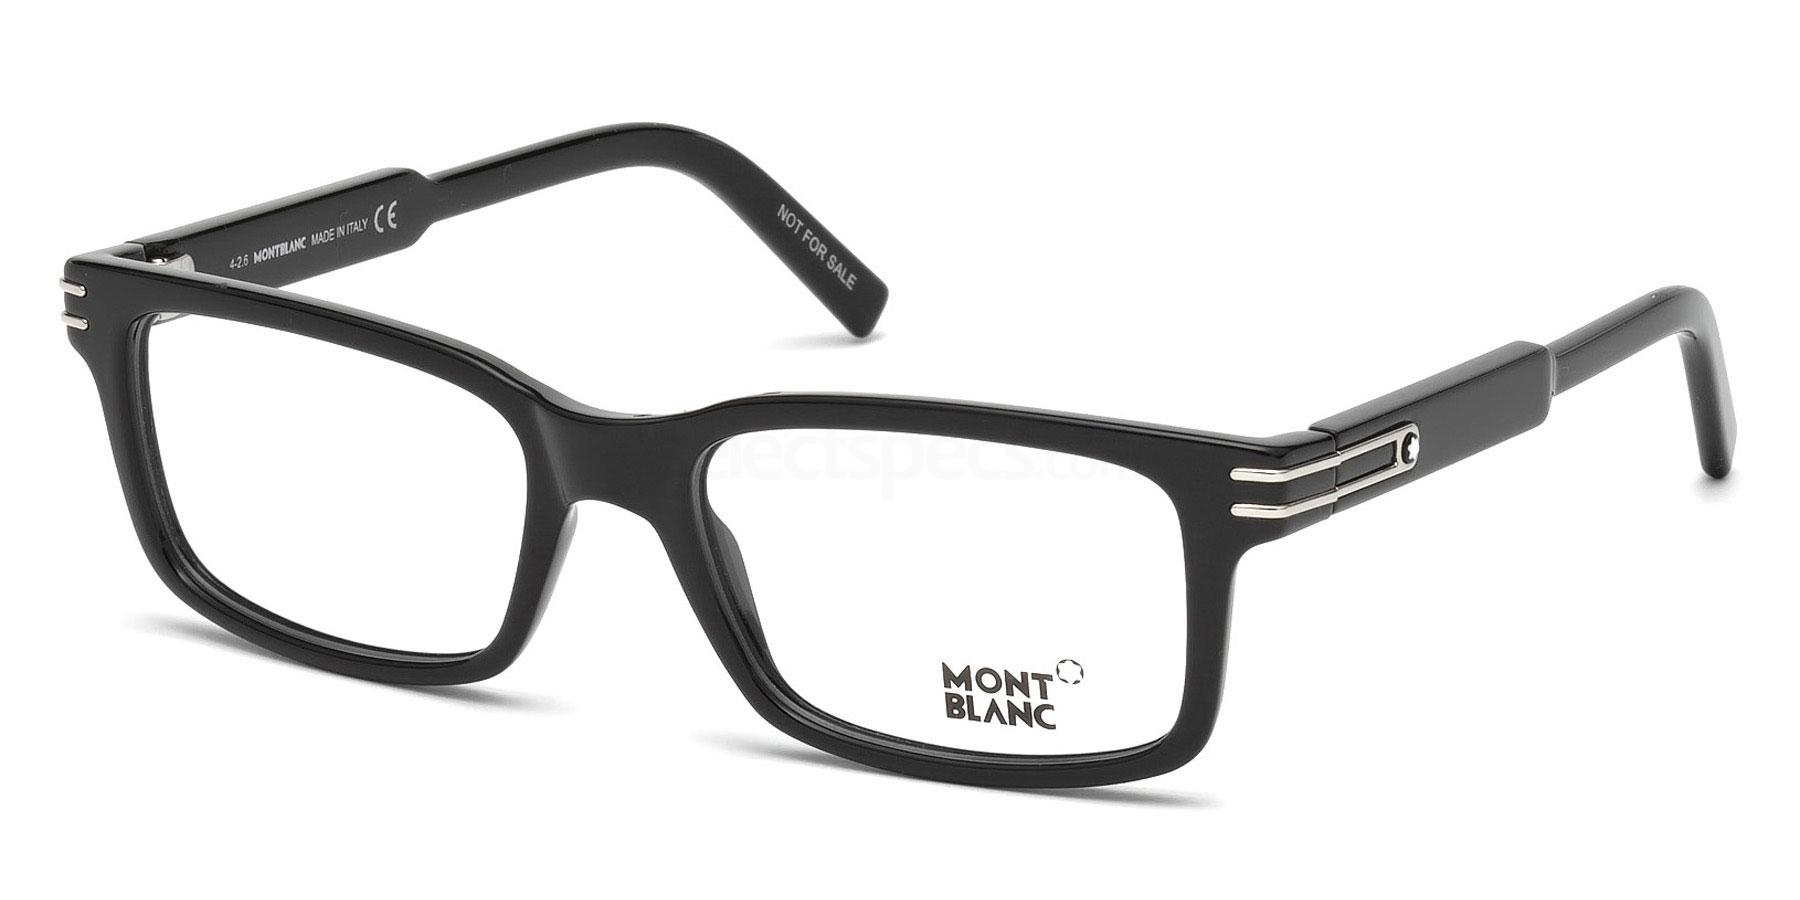 Mont Blanc black glasses